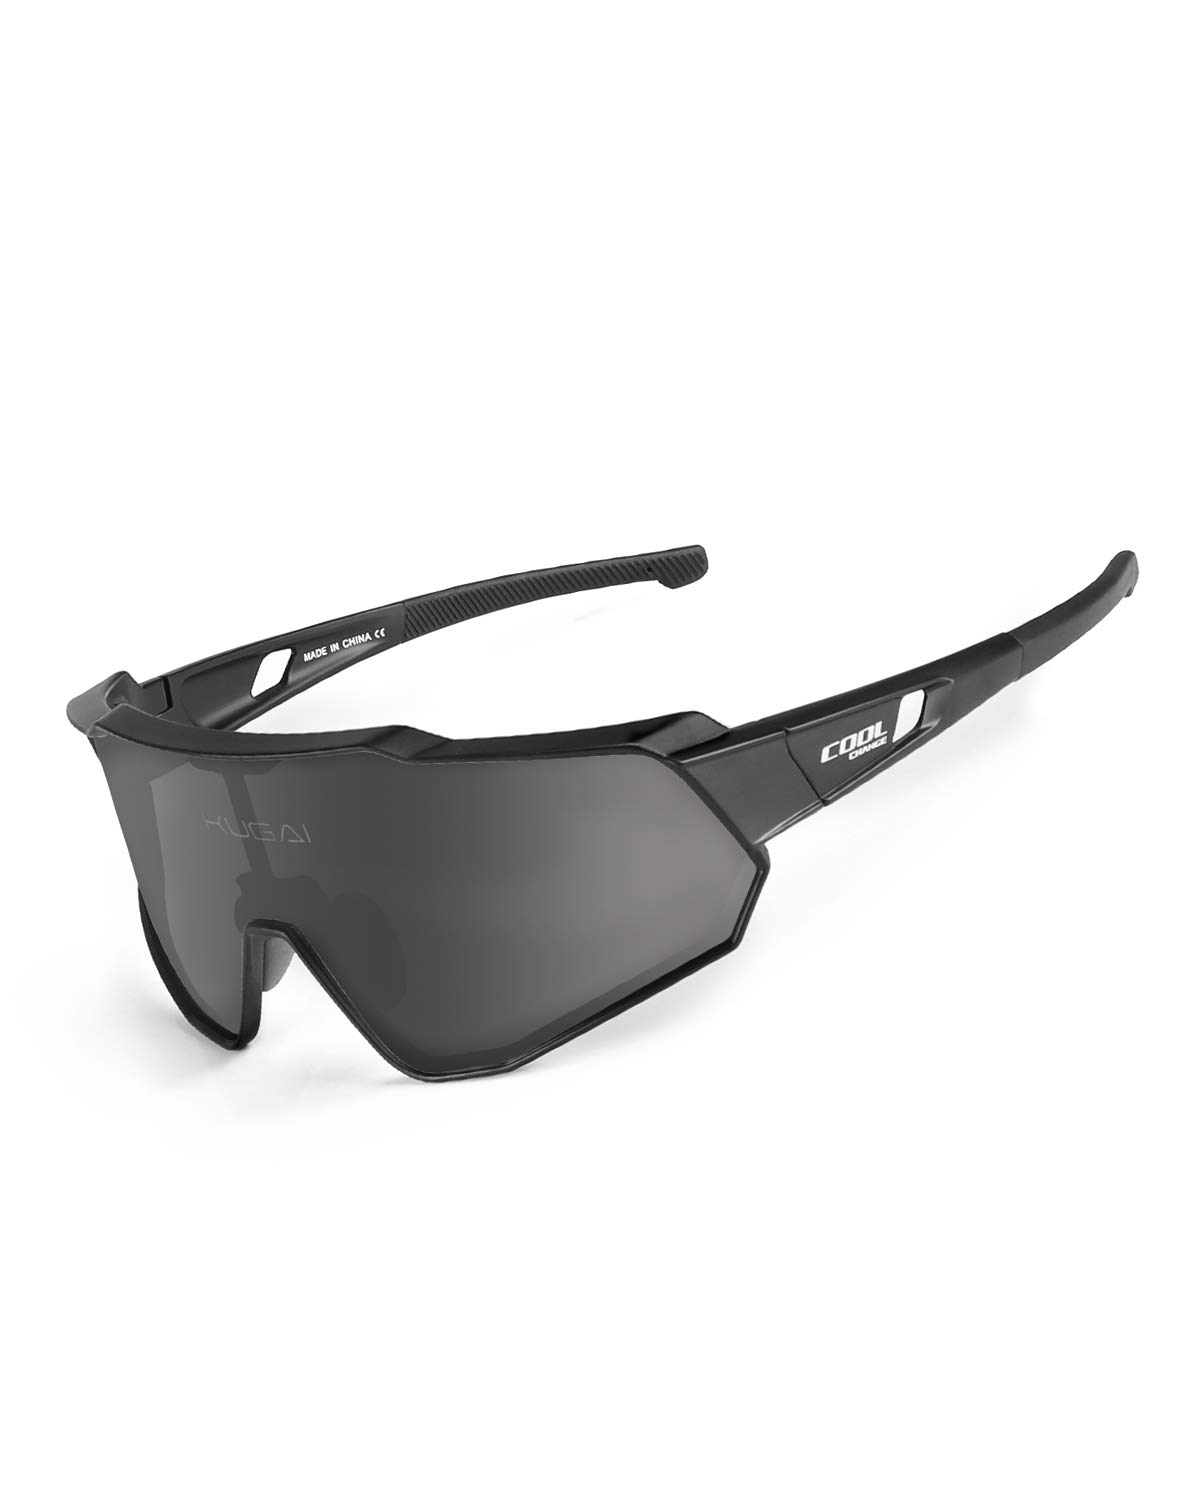 Cool Change Polarized Cycling Sunglasses Full Screen TR90 Unbreakable Lightweight Sports Glasses for Men Women